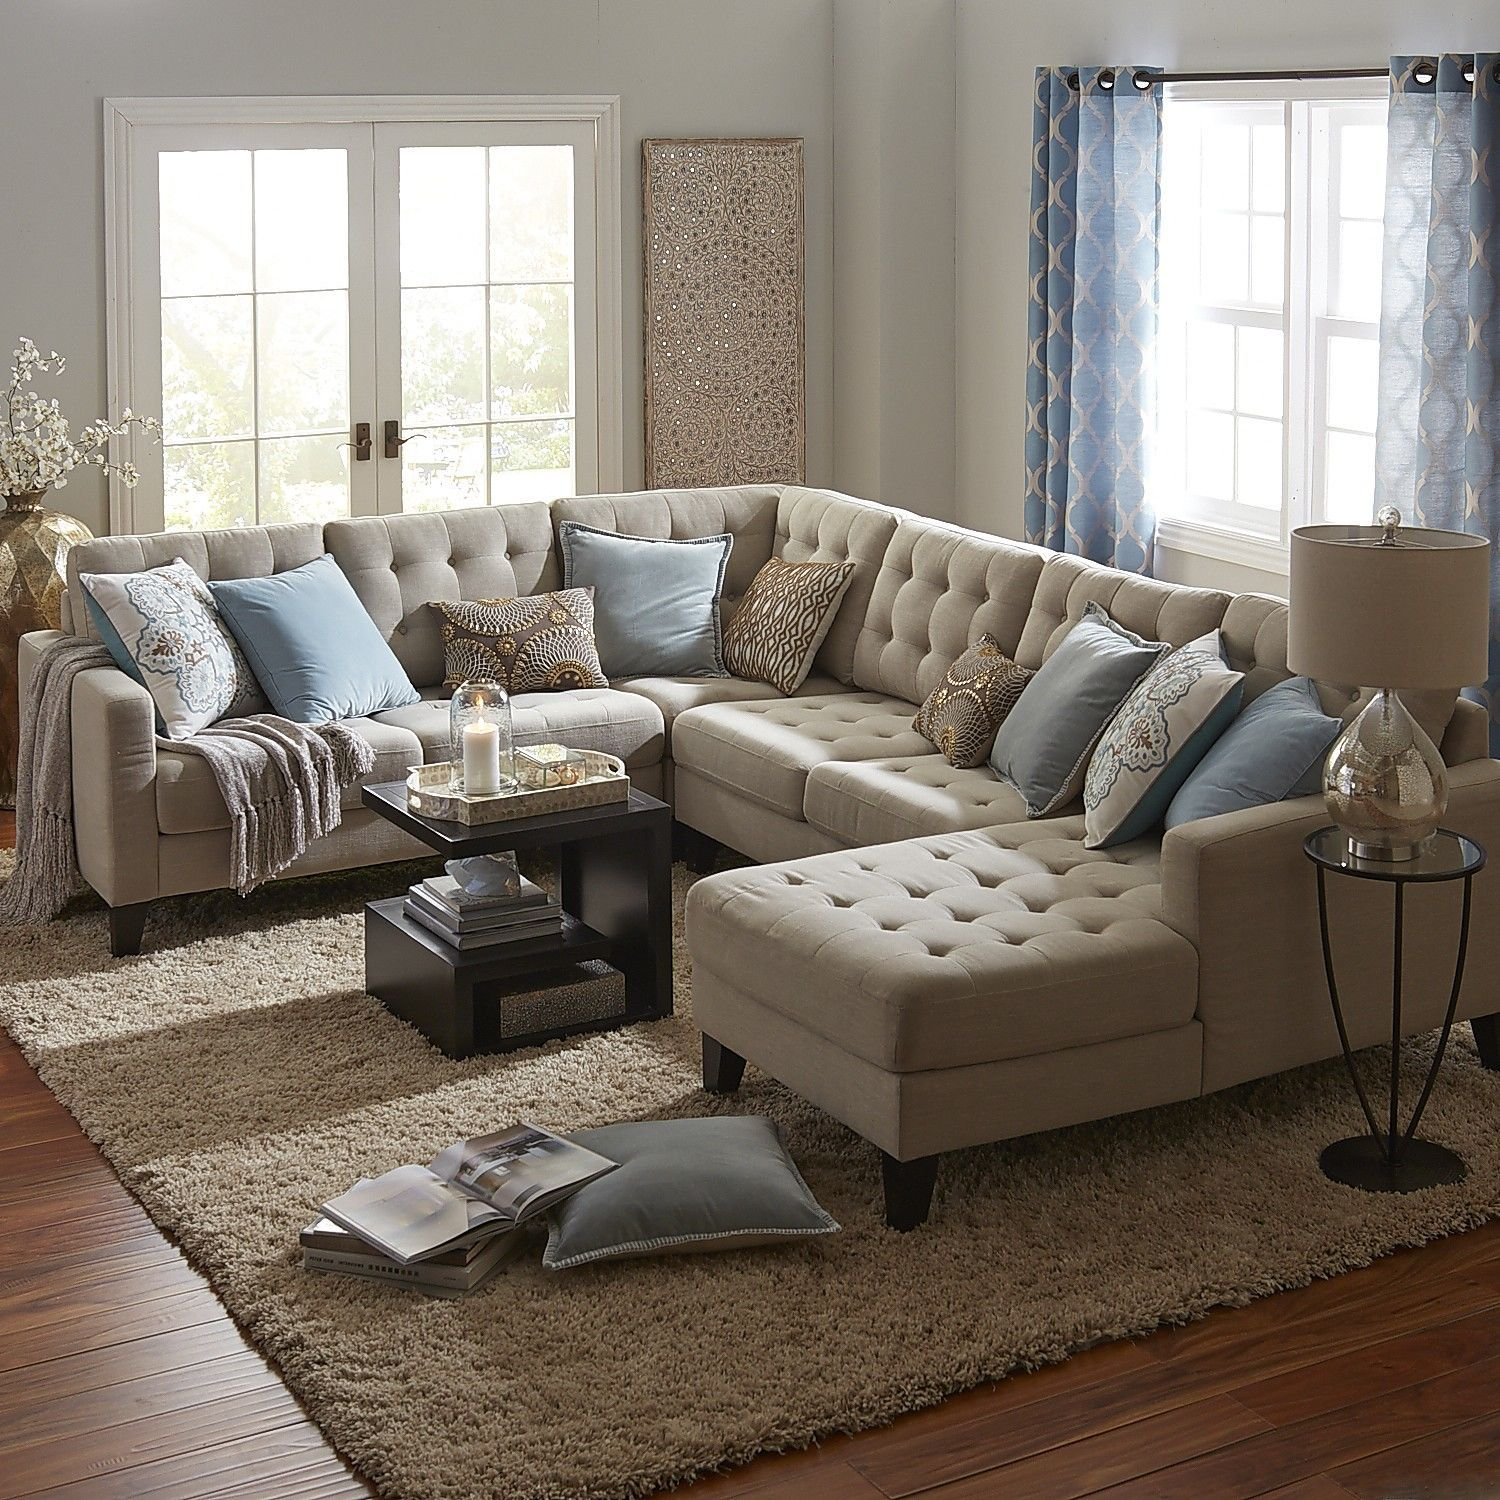 Build Your Own Nyle Sectional Stone Transitional Living Room Design Living Room Sectional Couches Living Room #pier #1 #living #room